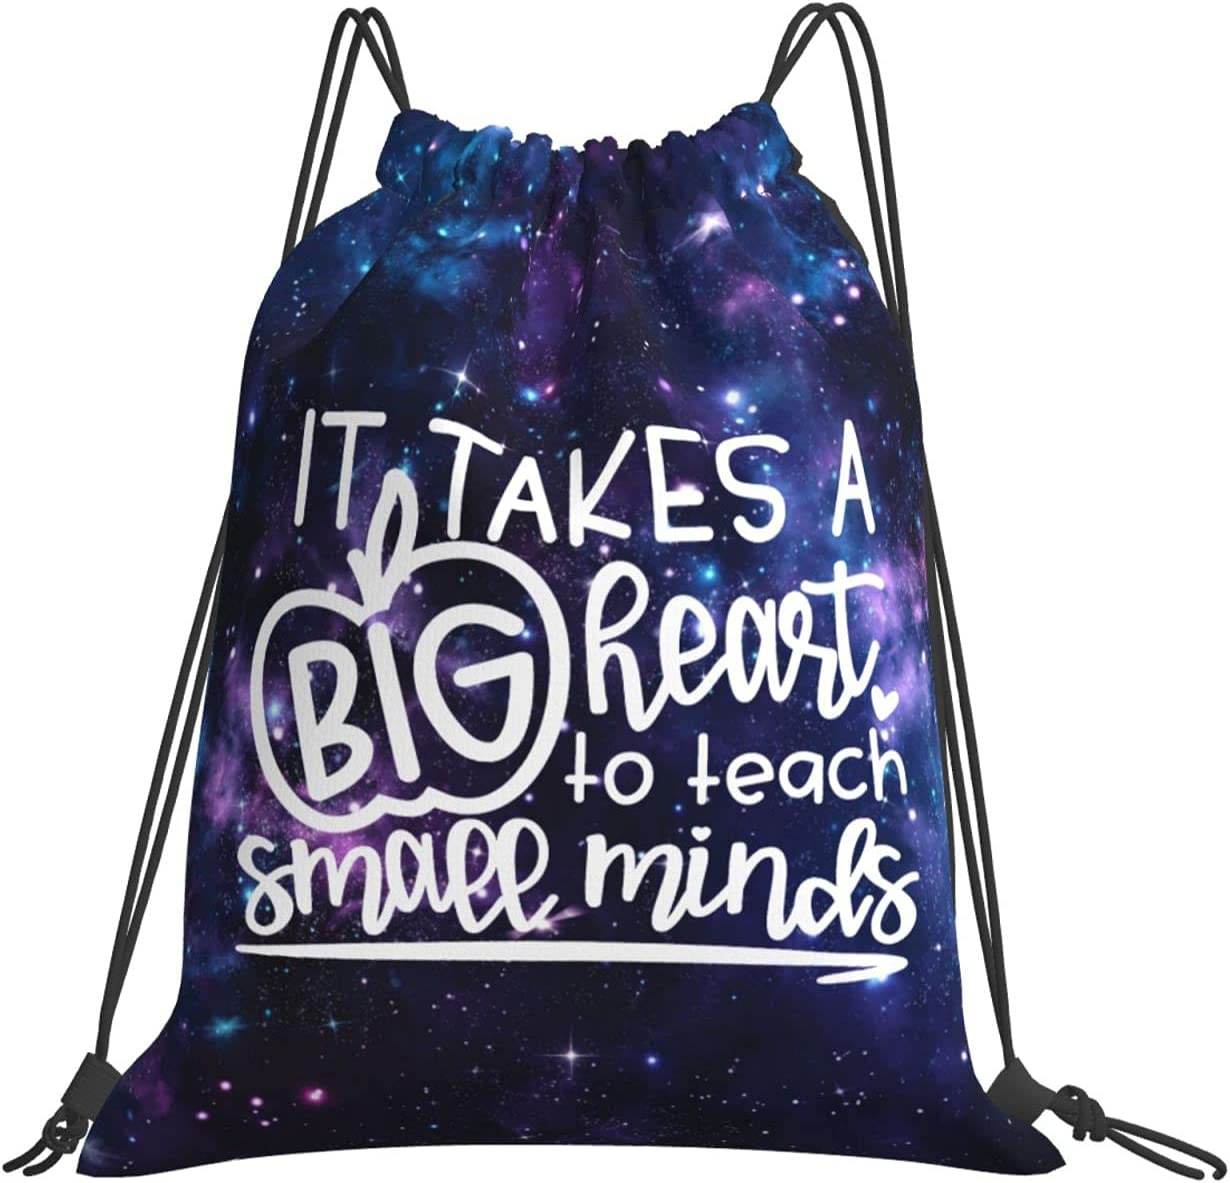 It Takes a Big Heart to Minds Backpack Teach Drawstring Little Max Shipping included 57% OFF f